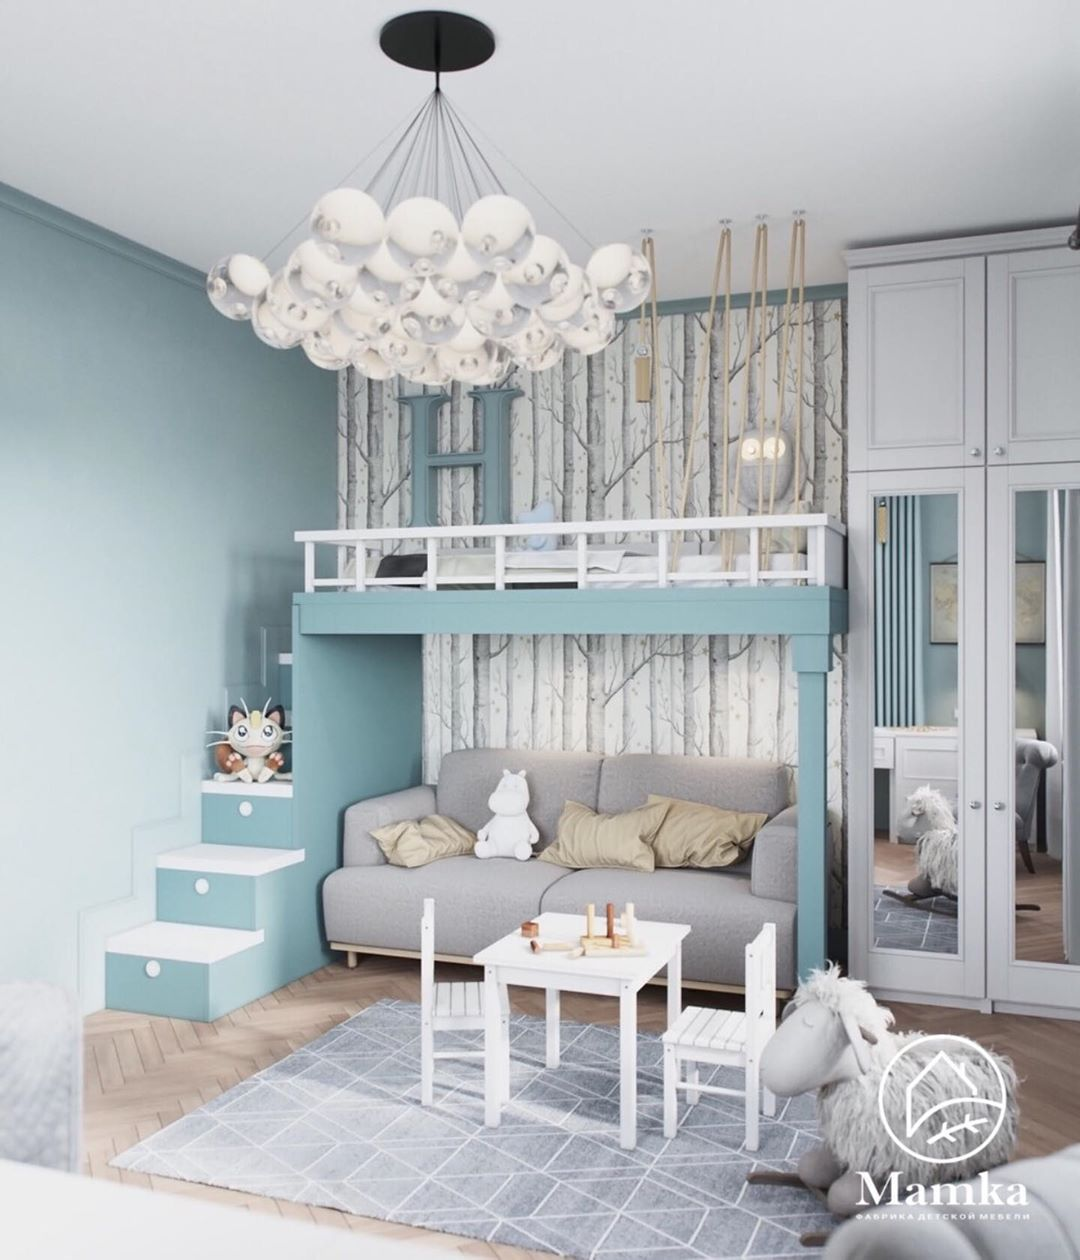 40 THE MOST BEAUTIFUL AND COOL KIDS ROOM DECORATION IDEAS - Page 29 of 44 - My Blog